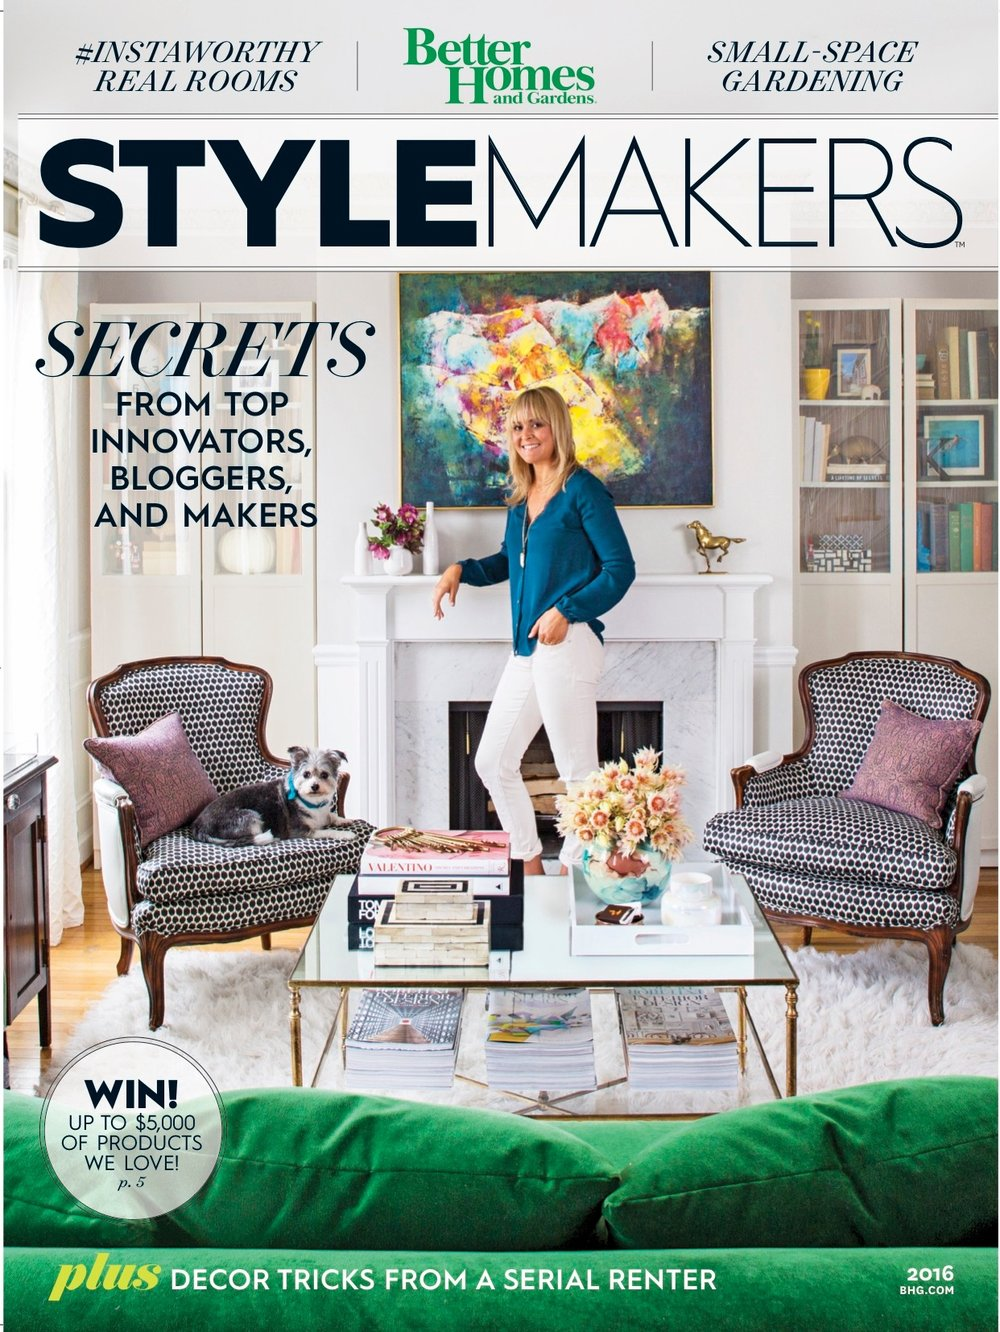 Stylemakers 2016-DIG.jpg